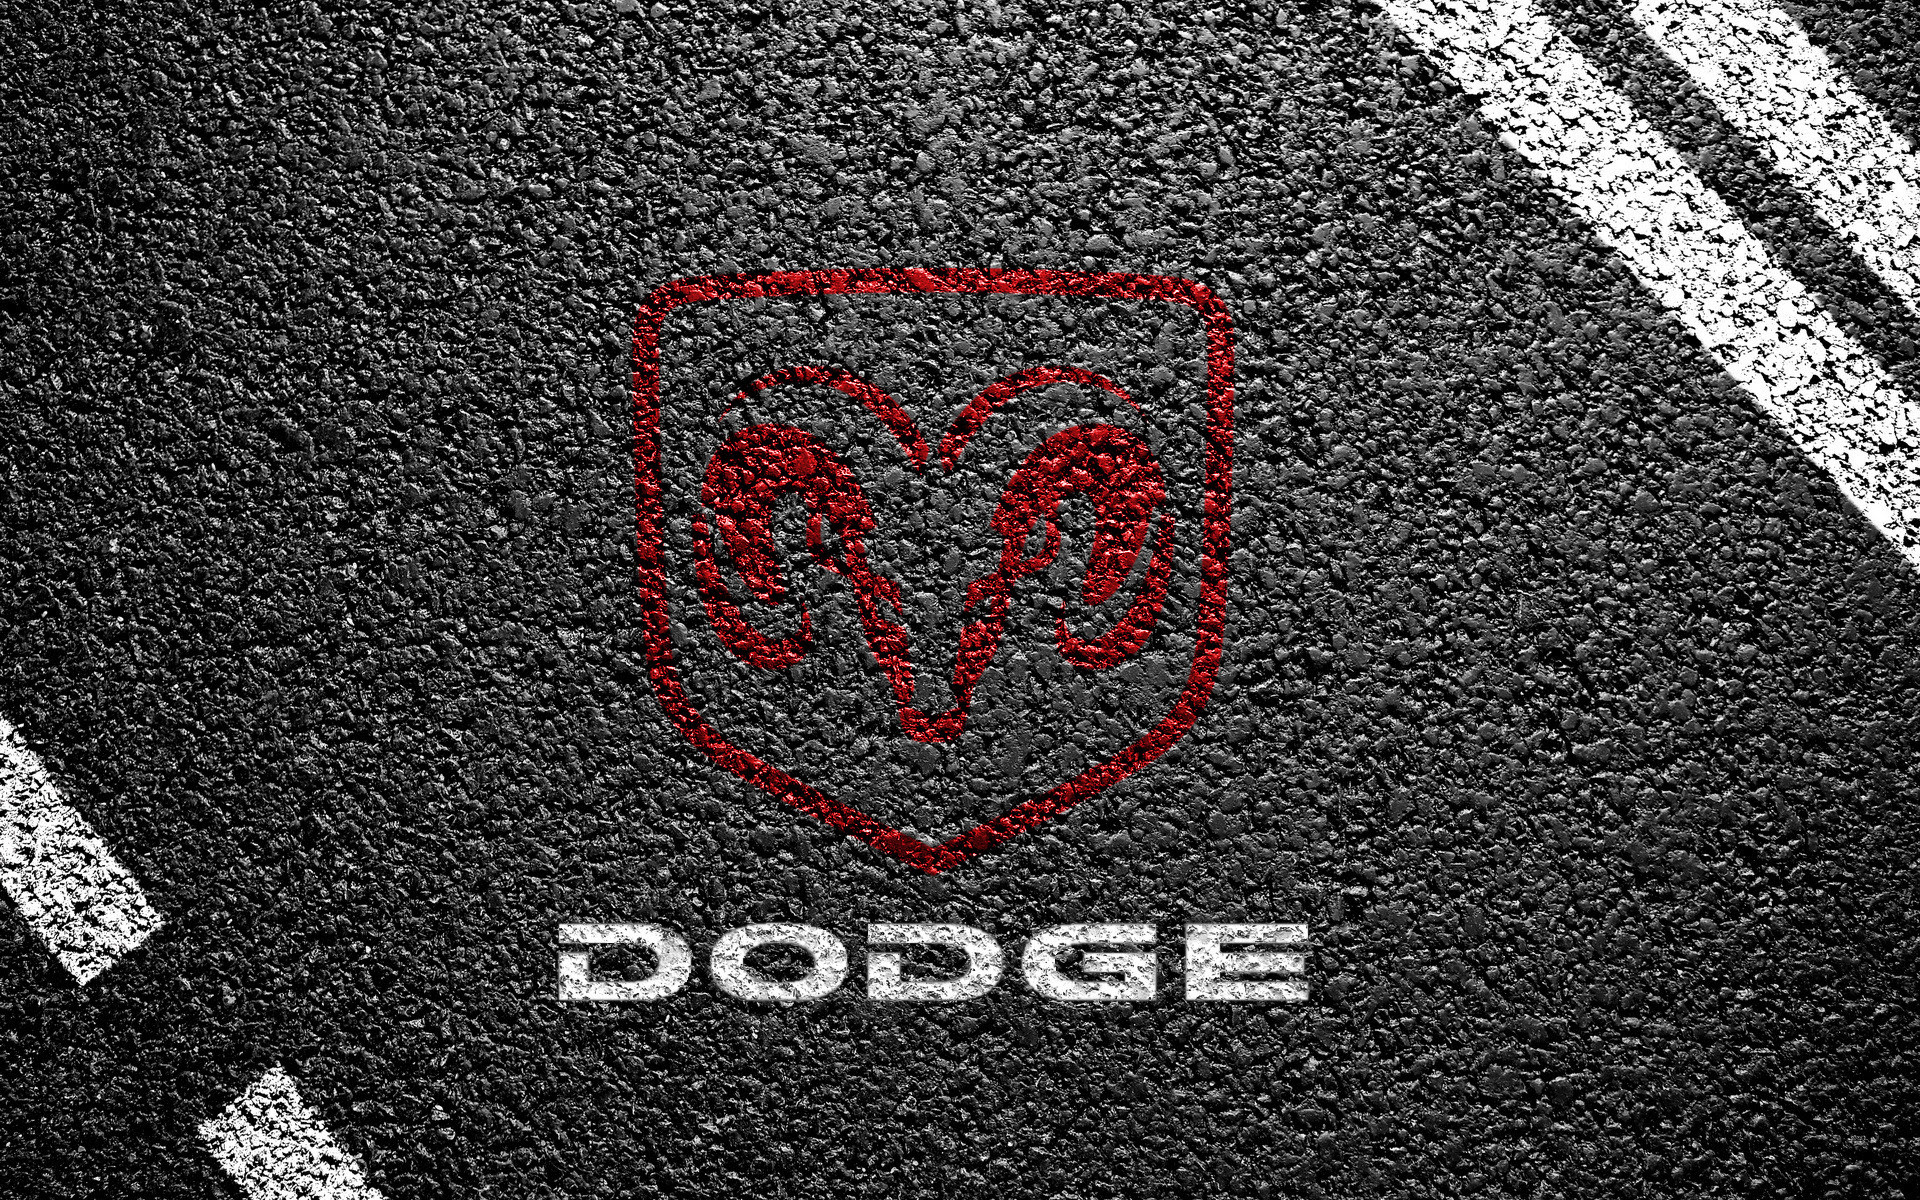 Dodge Logo Wallpapers 50 Images Images, Photos, Reviews